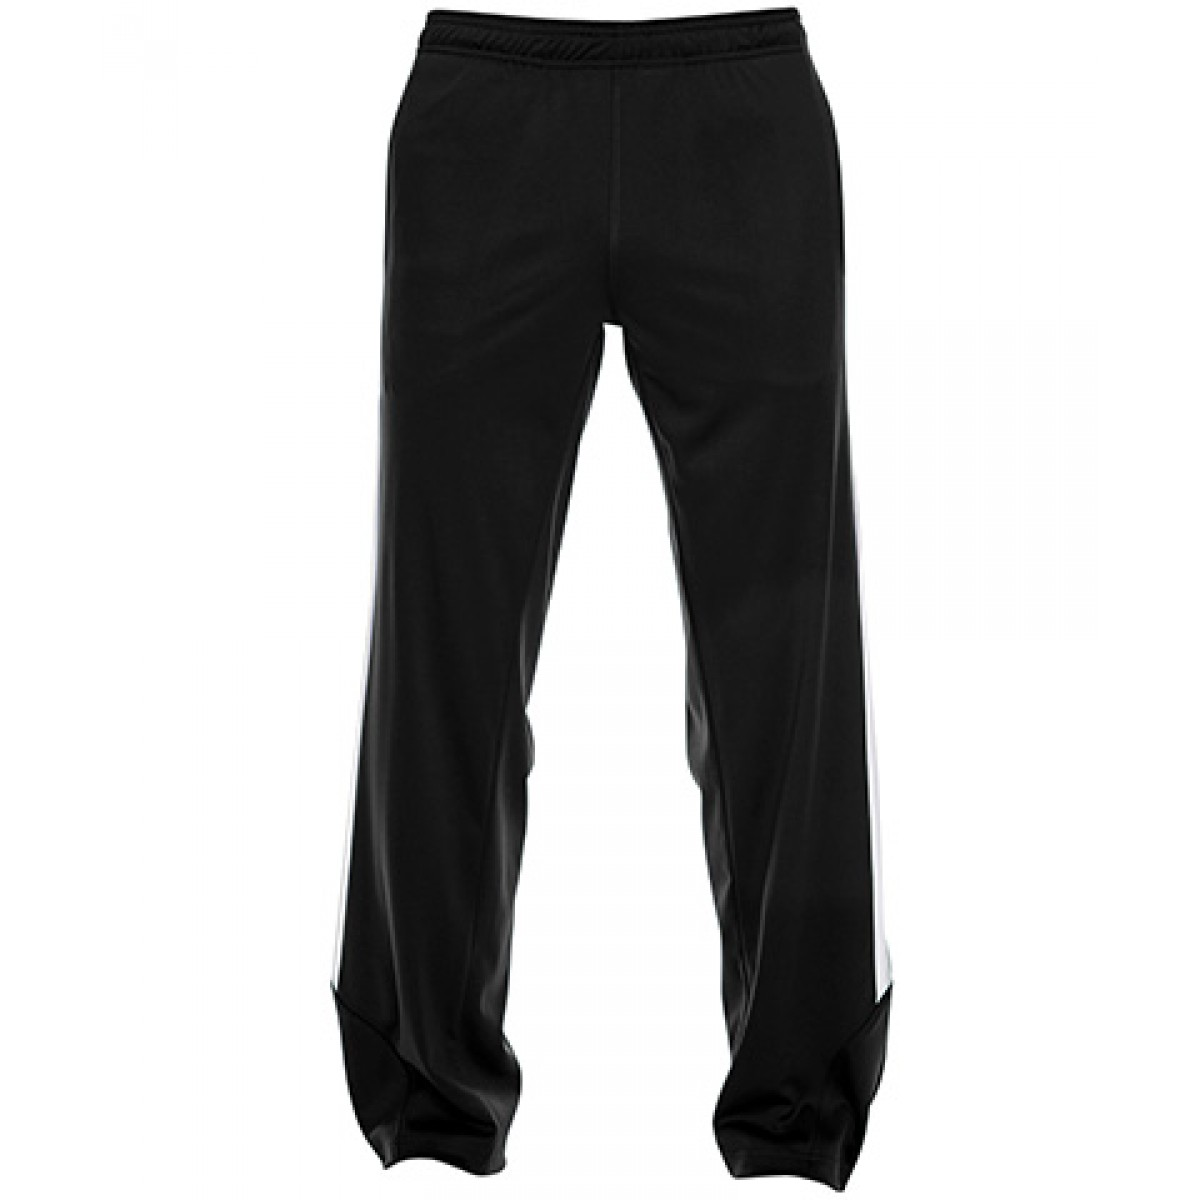 Men's Elite Performance Fleece Pant-Black-3XL